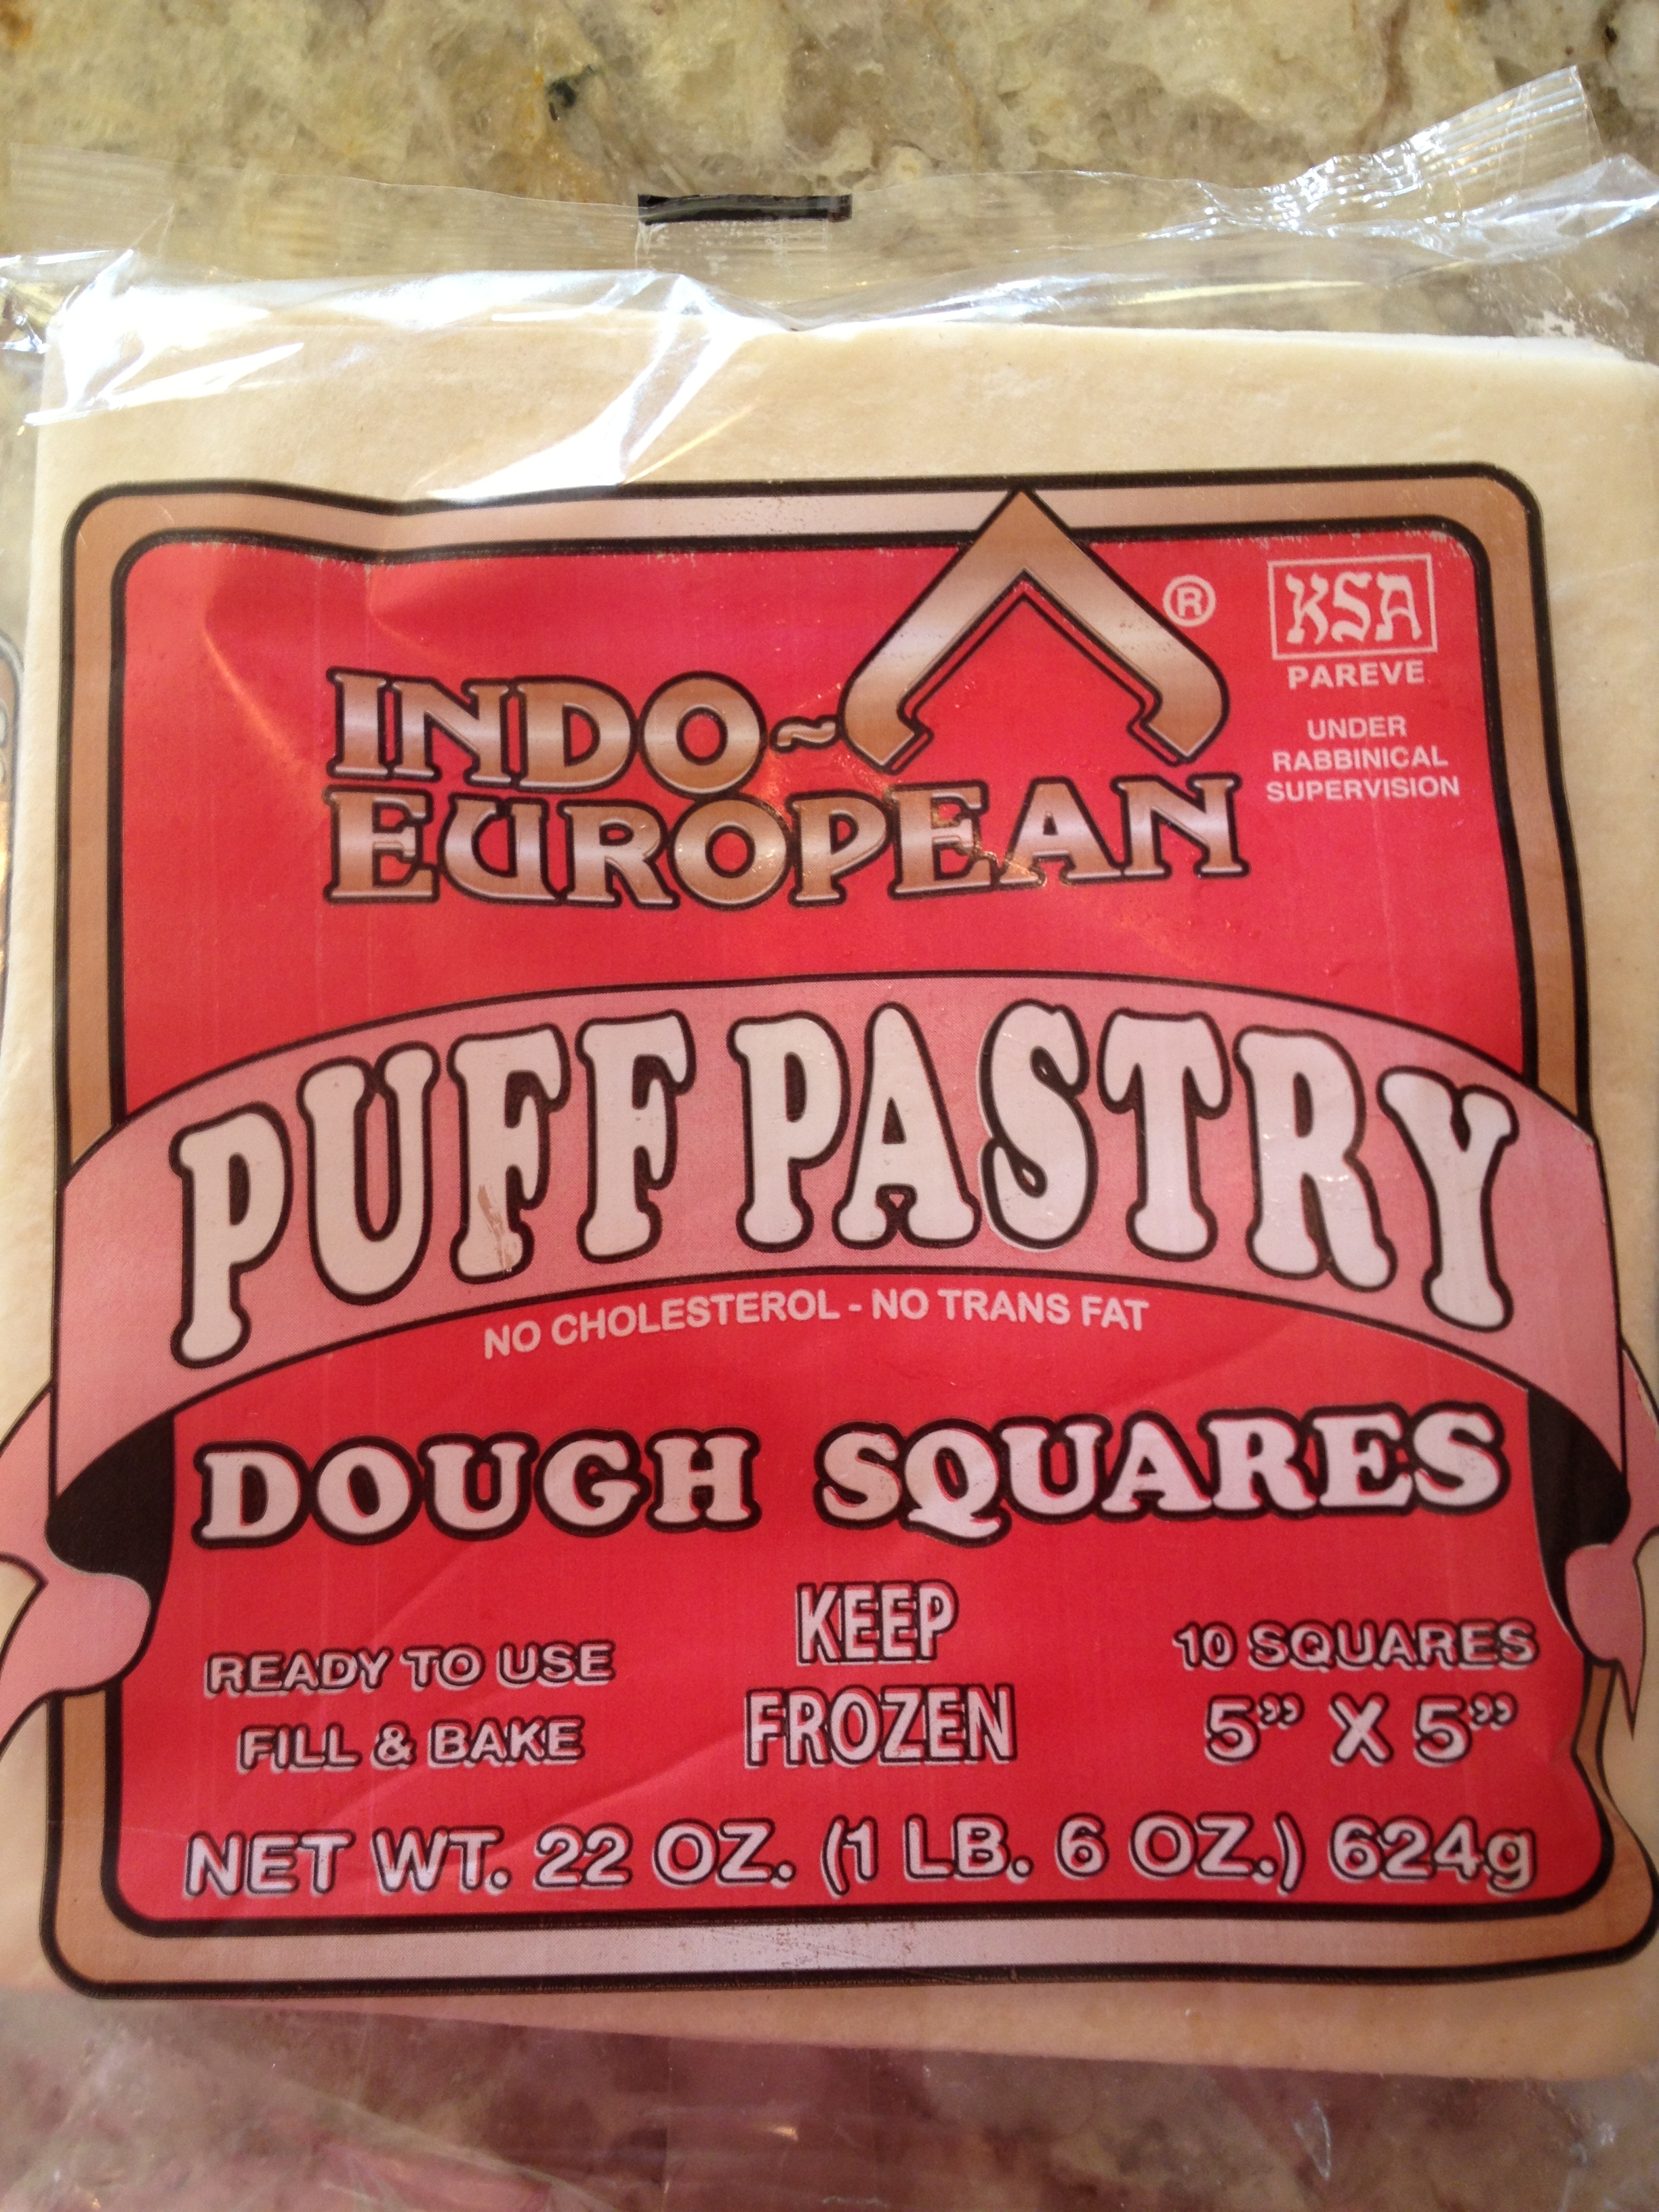 Puff Pastry Square from Indian Grocer